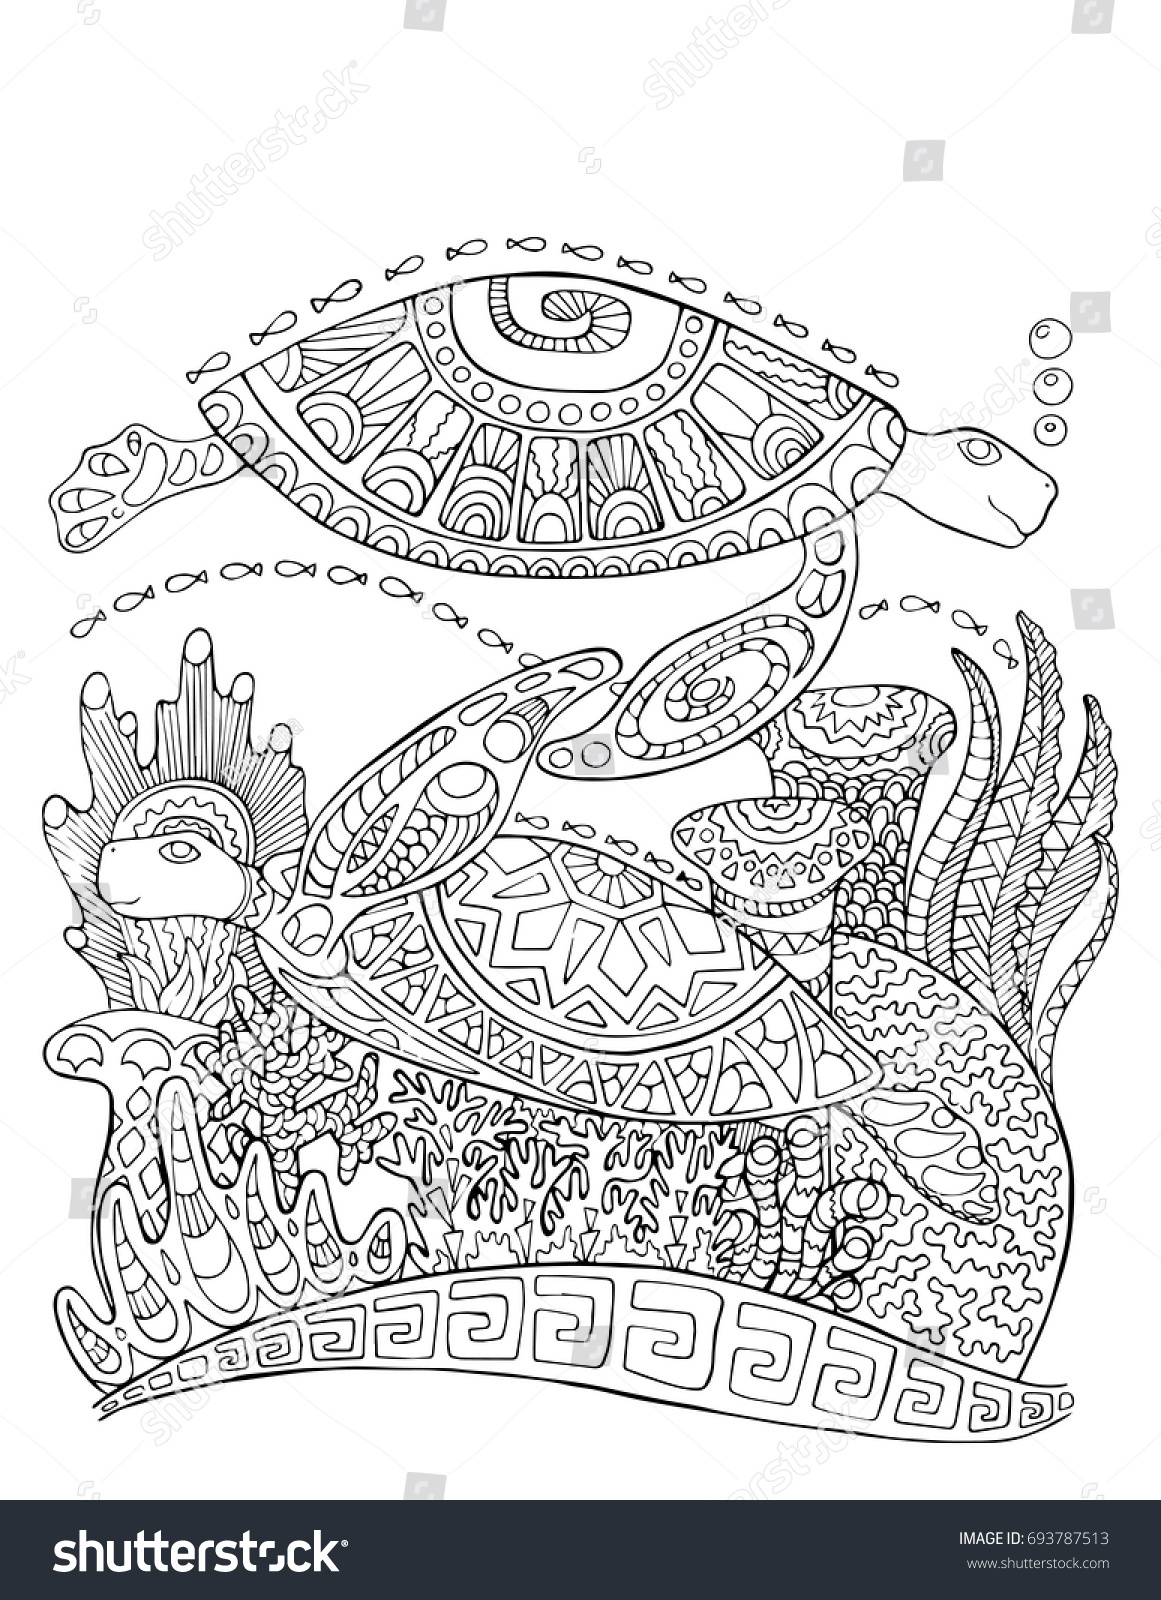 Sea Turtle Doodle Style Coloring Page Stock Vector (Royalty Free ...